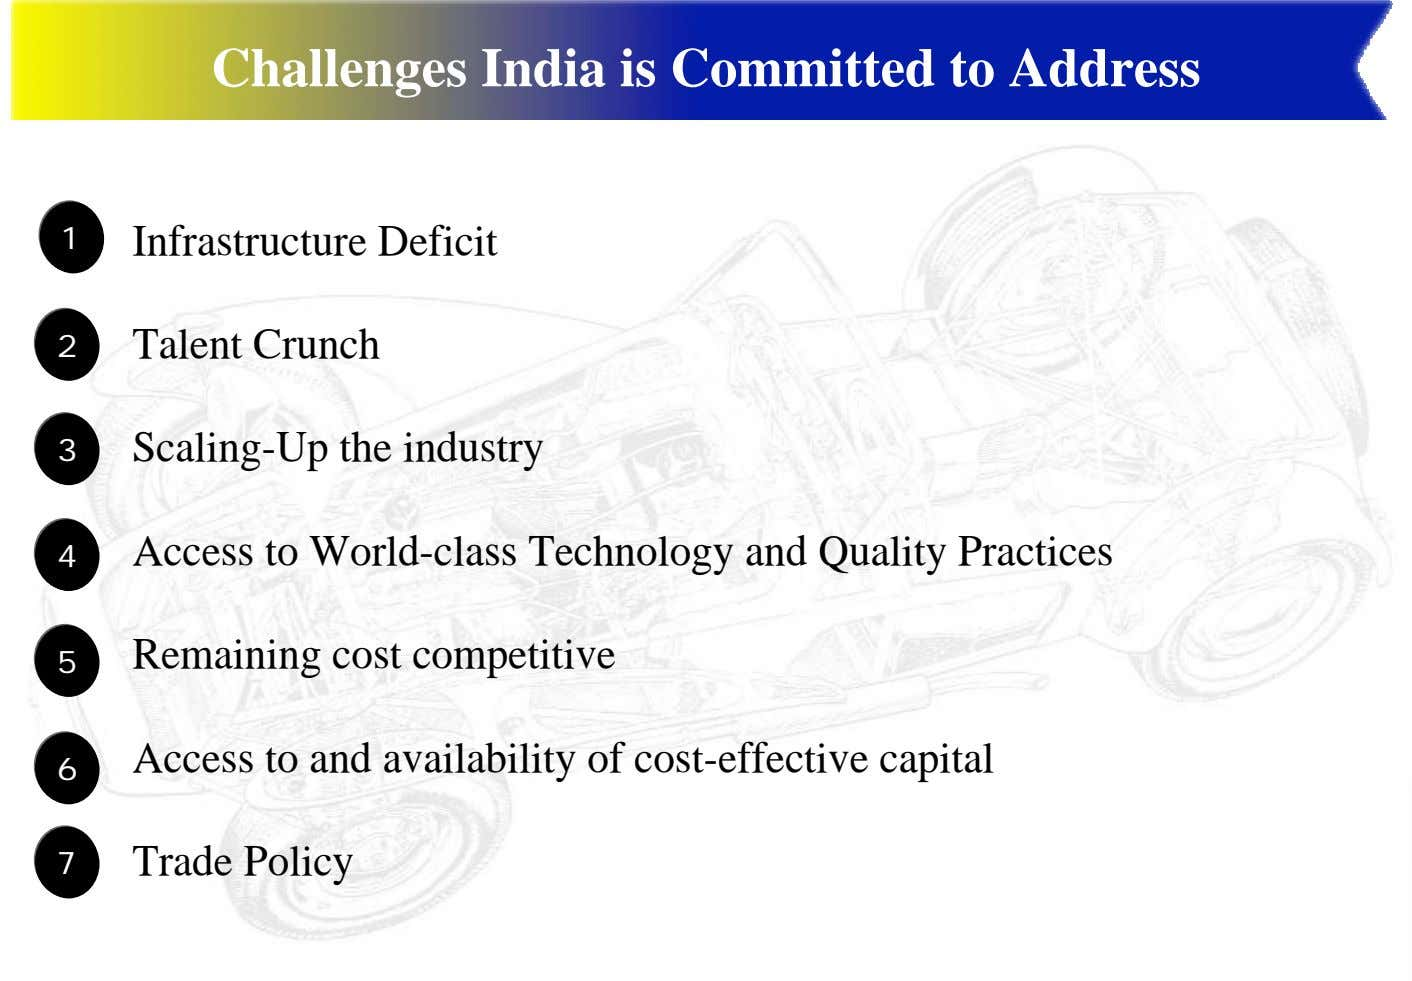 Challenges India is Committed to Address 1 Infrastructure Deficit 2 Talent Crunch 3 Scaling-Up the